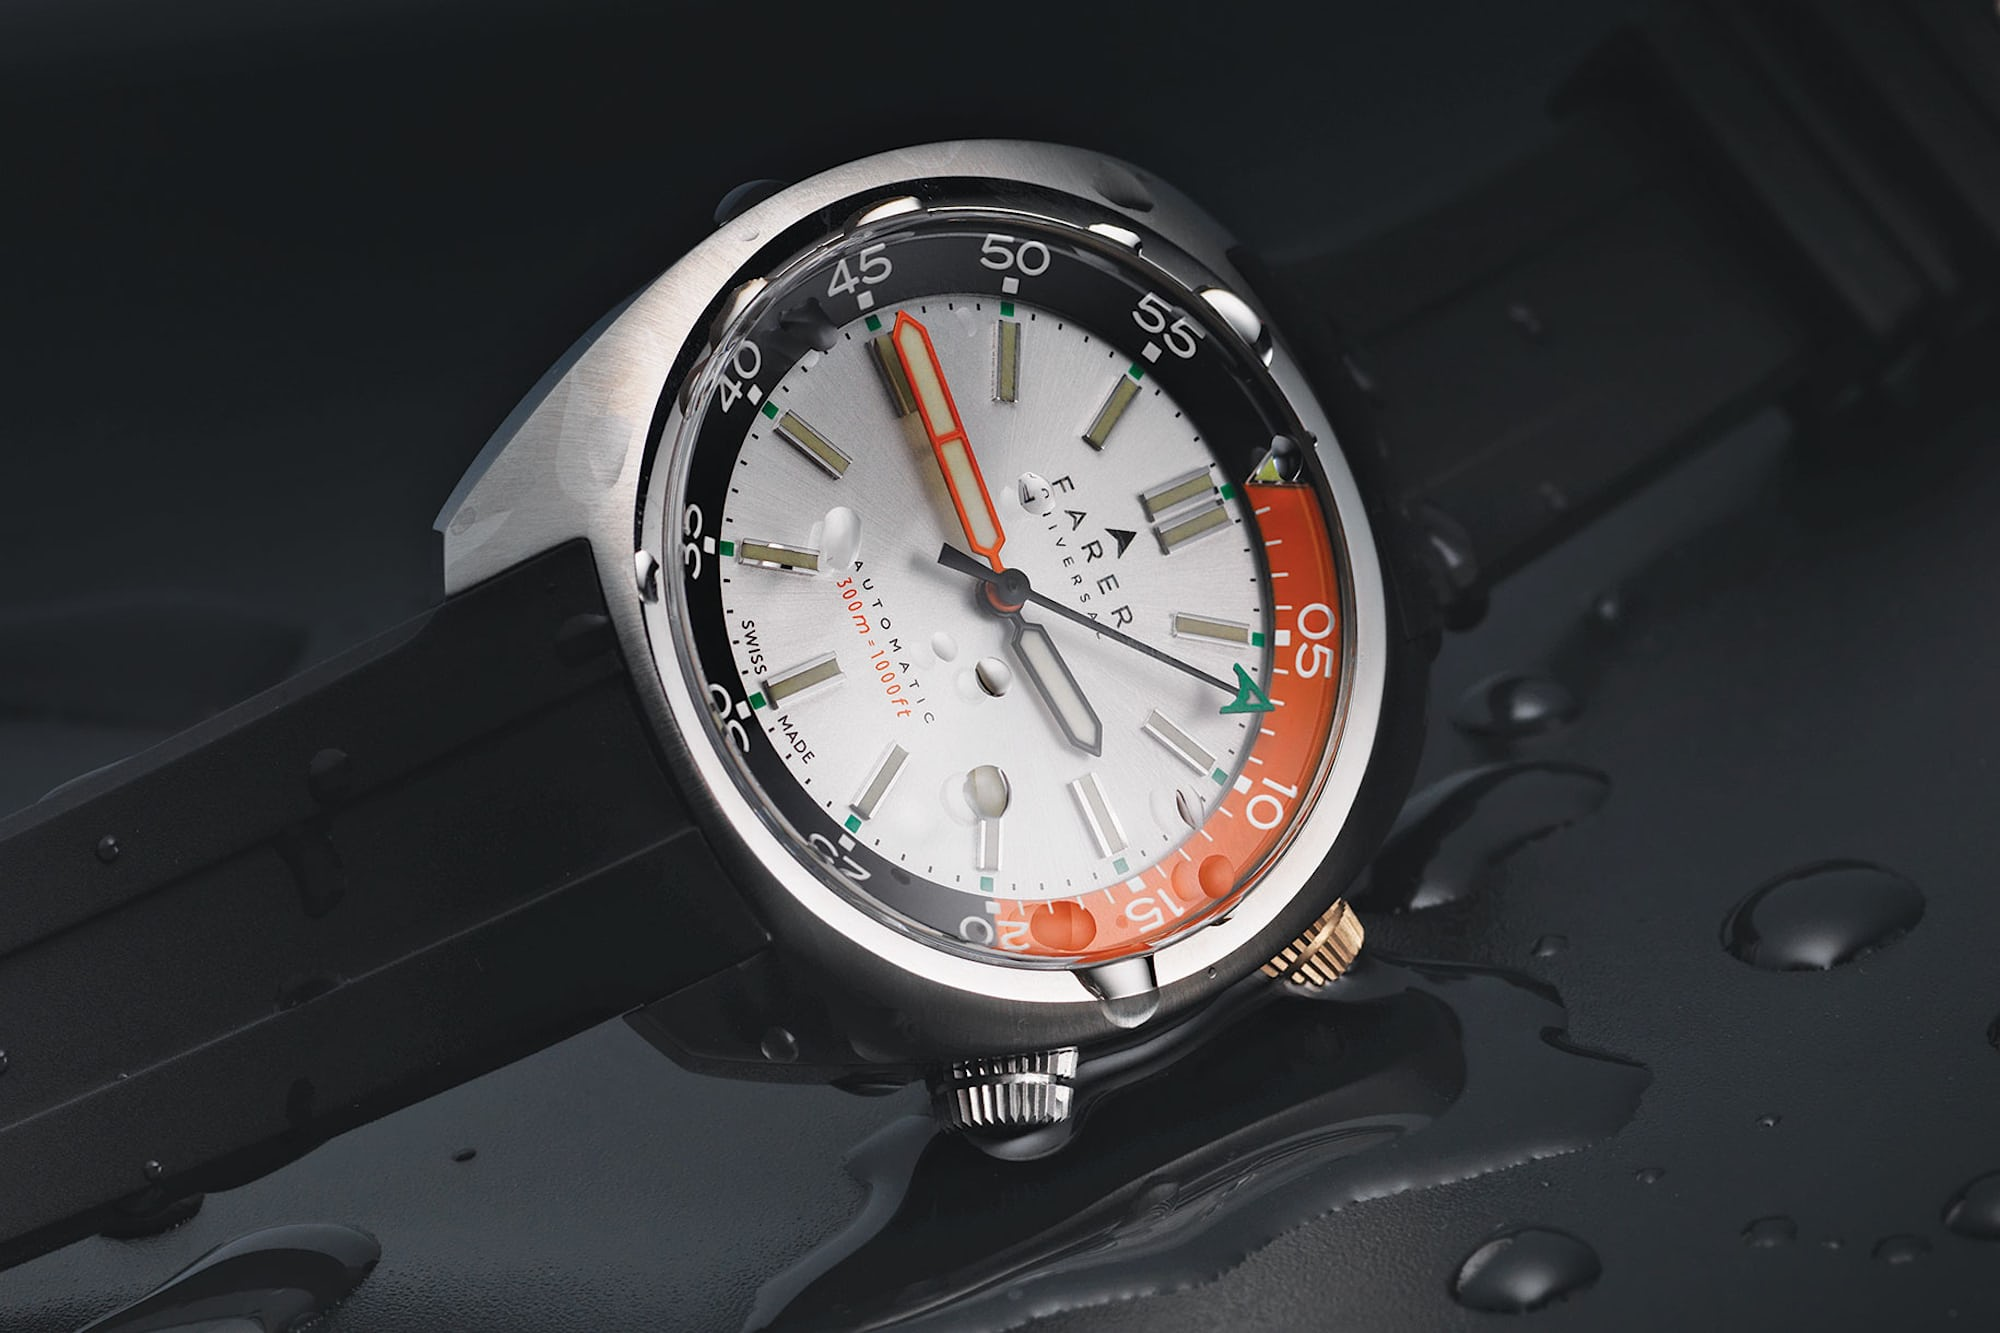 Farer Aqua Compressor on black rubber strap introducing: farer aqua compressor automatic dive watches Introducing: Farer Aqua Compressor Automatic Dive Watches Farer Aqua Compressor 2